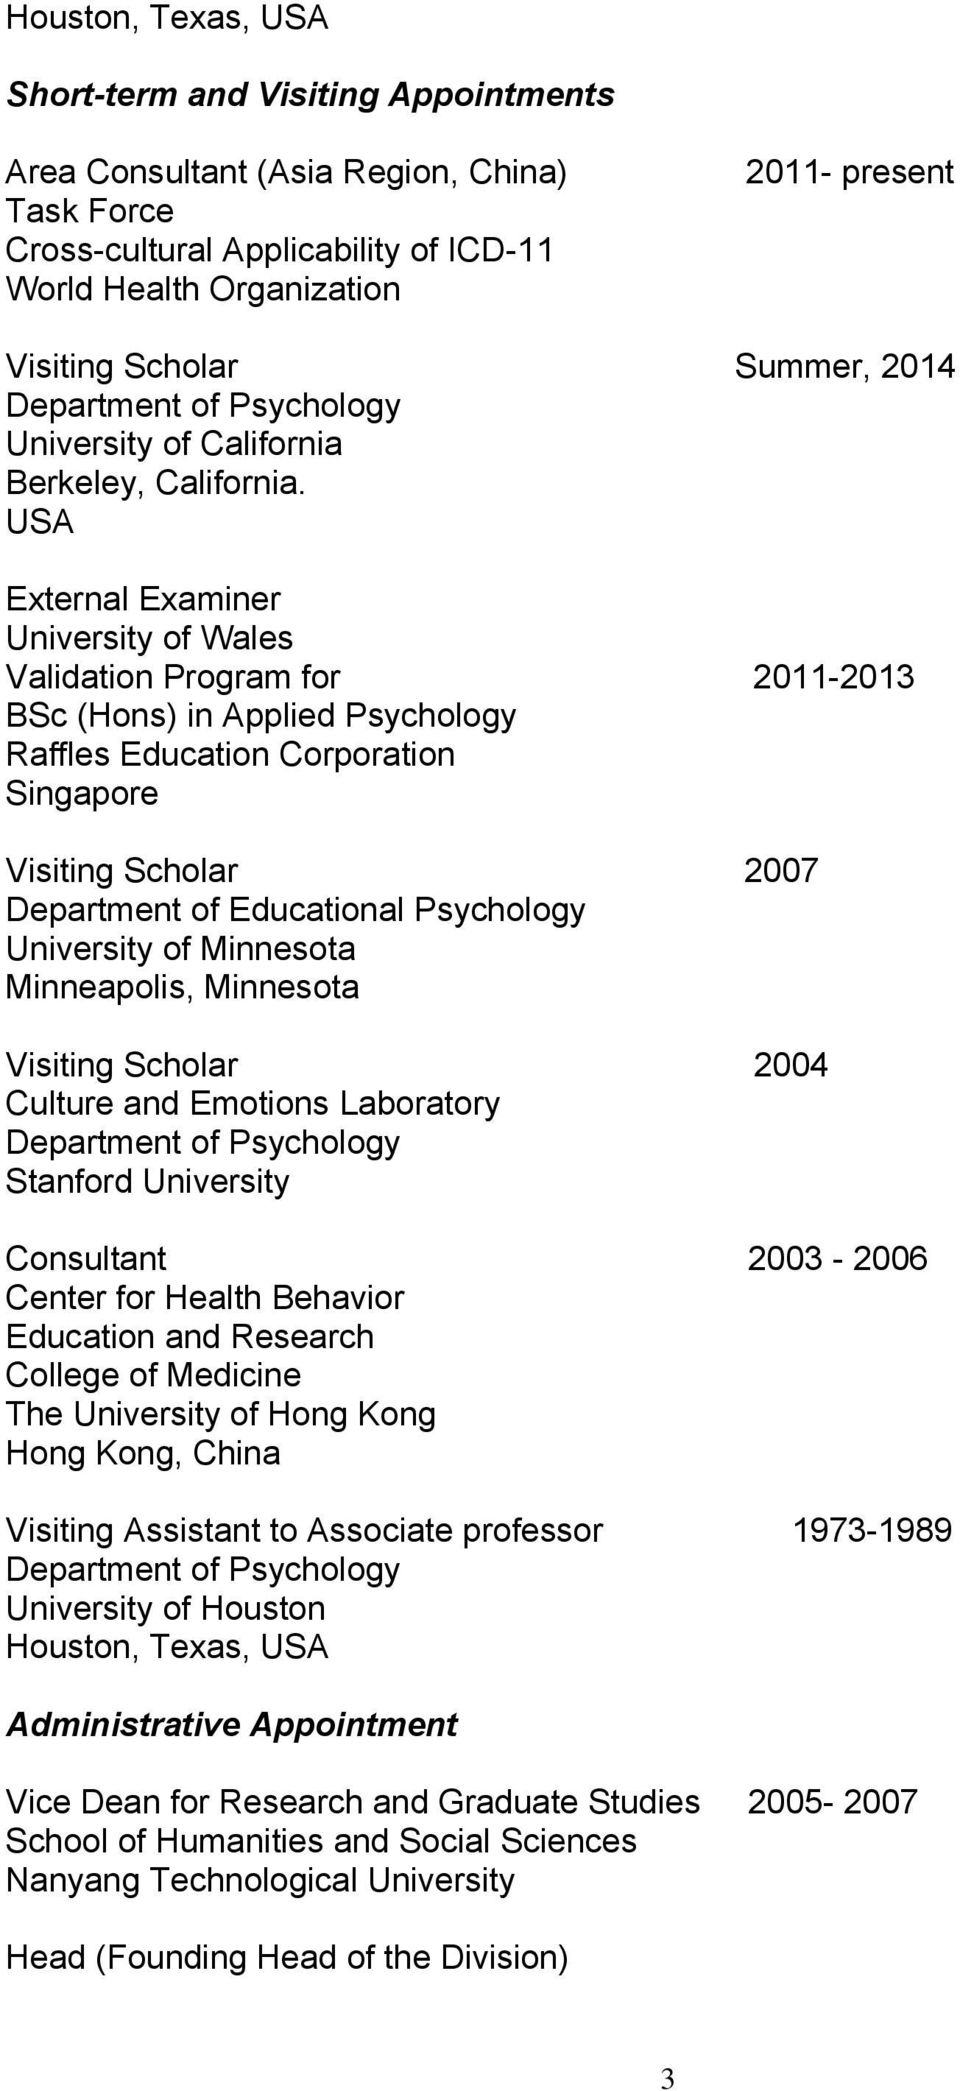 USA External Examiner University of Wales Validation Program for 2011-2013 BSc (Hons) in Applied Psychology Raffles Education Corporation Singapore Visiting Scholar 2007 Department of Educational